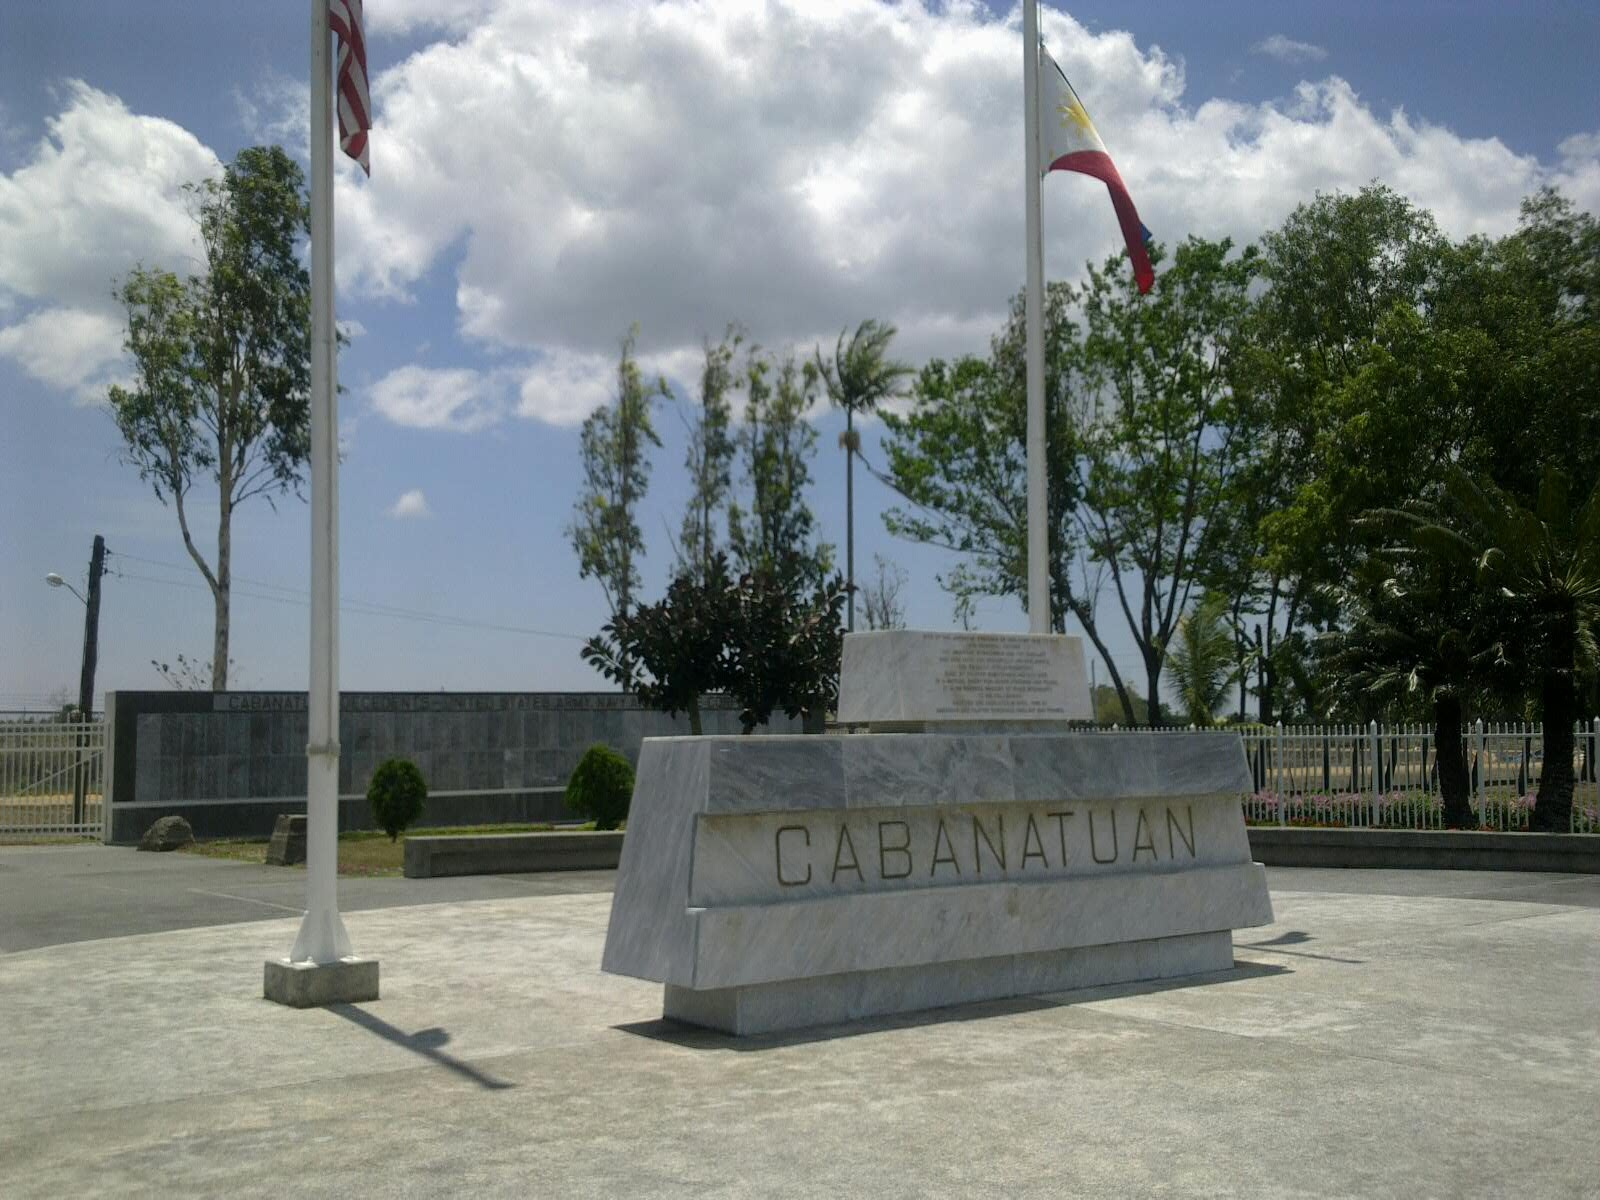 Cabanatuan Philippines  city images : Our Mission to the Philippines: The Cabanatuan Memorial